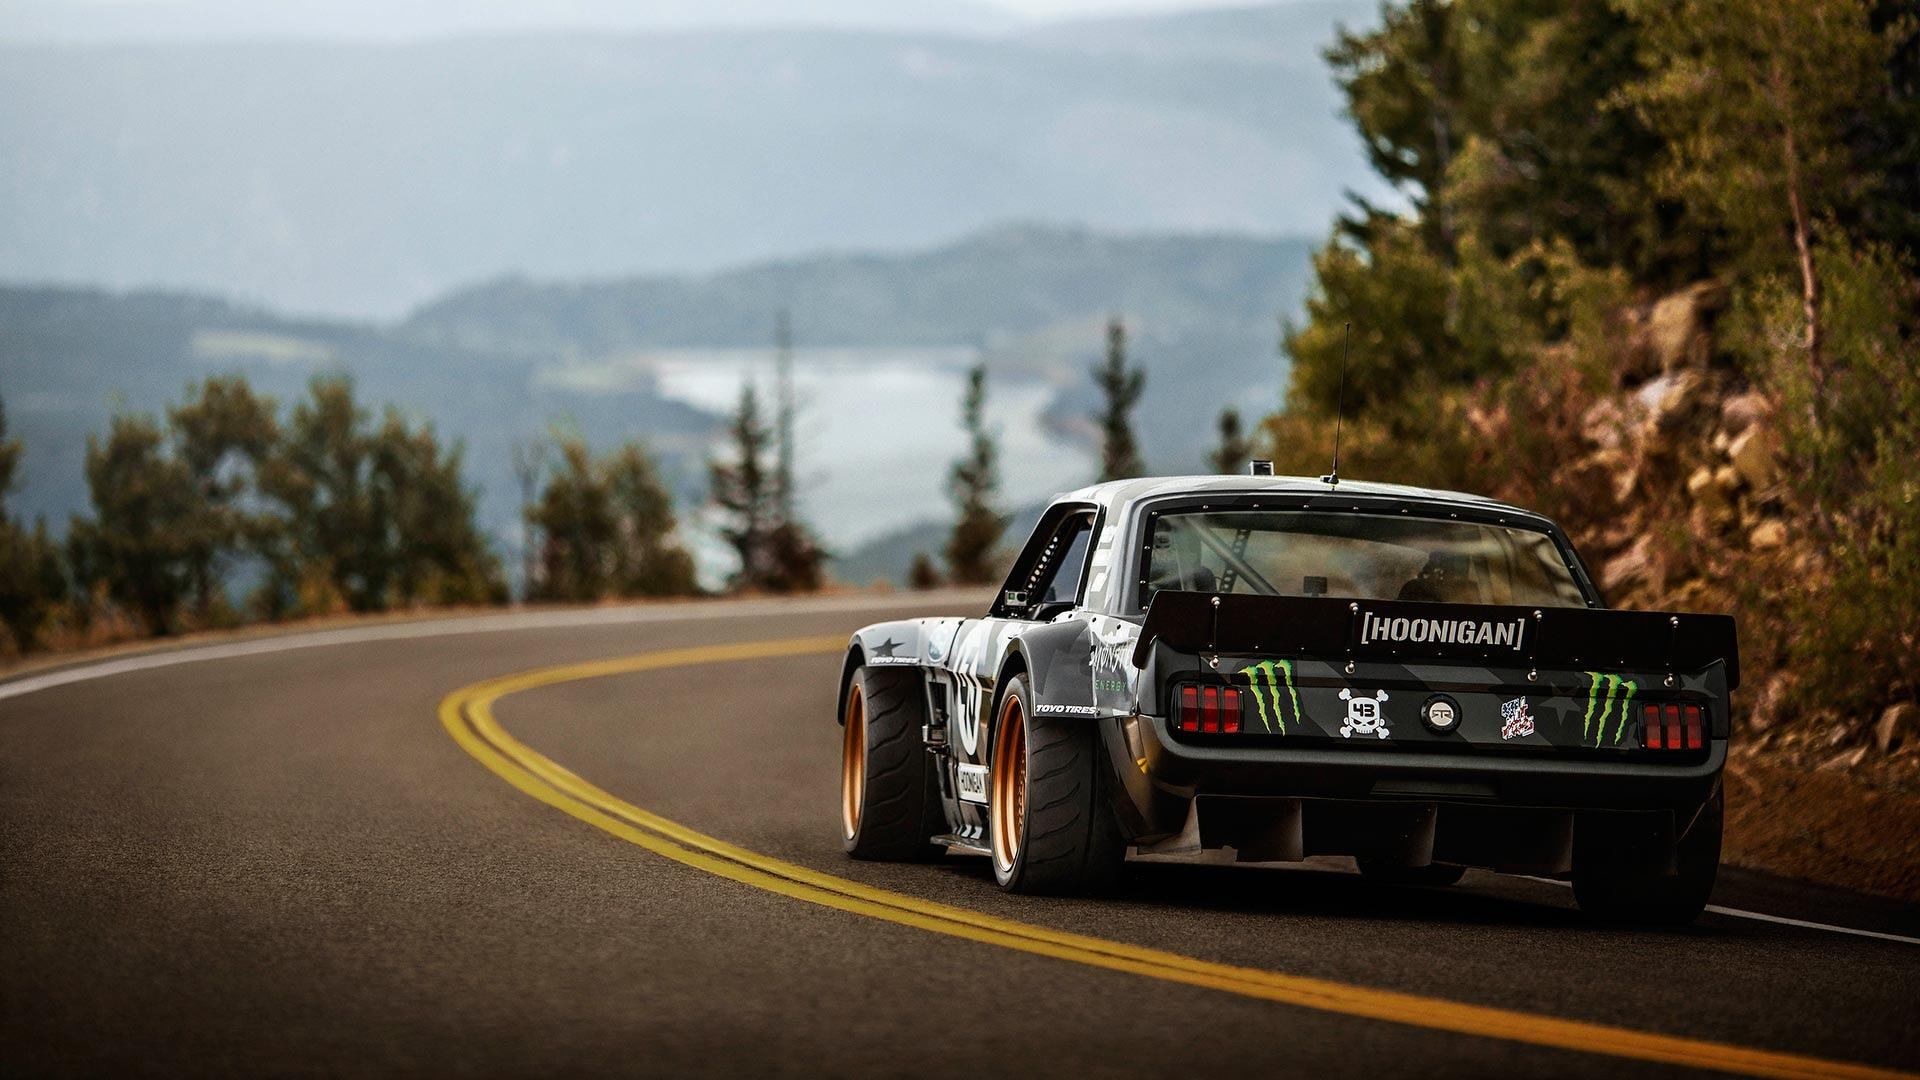 Ken Block Talks About Climbkhana In Behind The Scenes Video